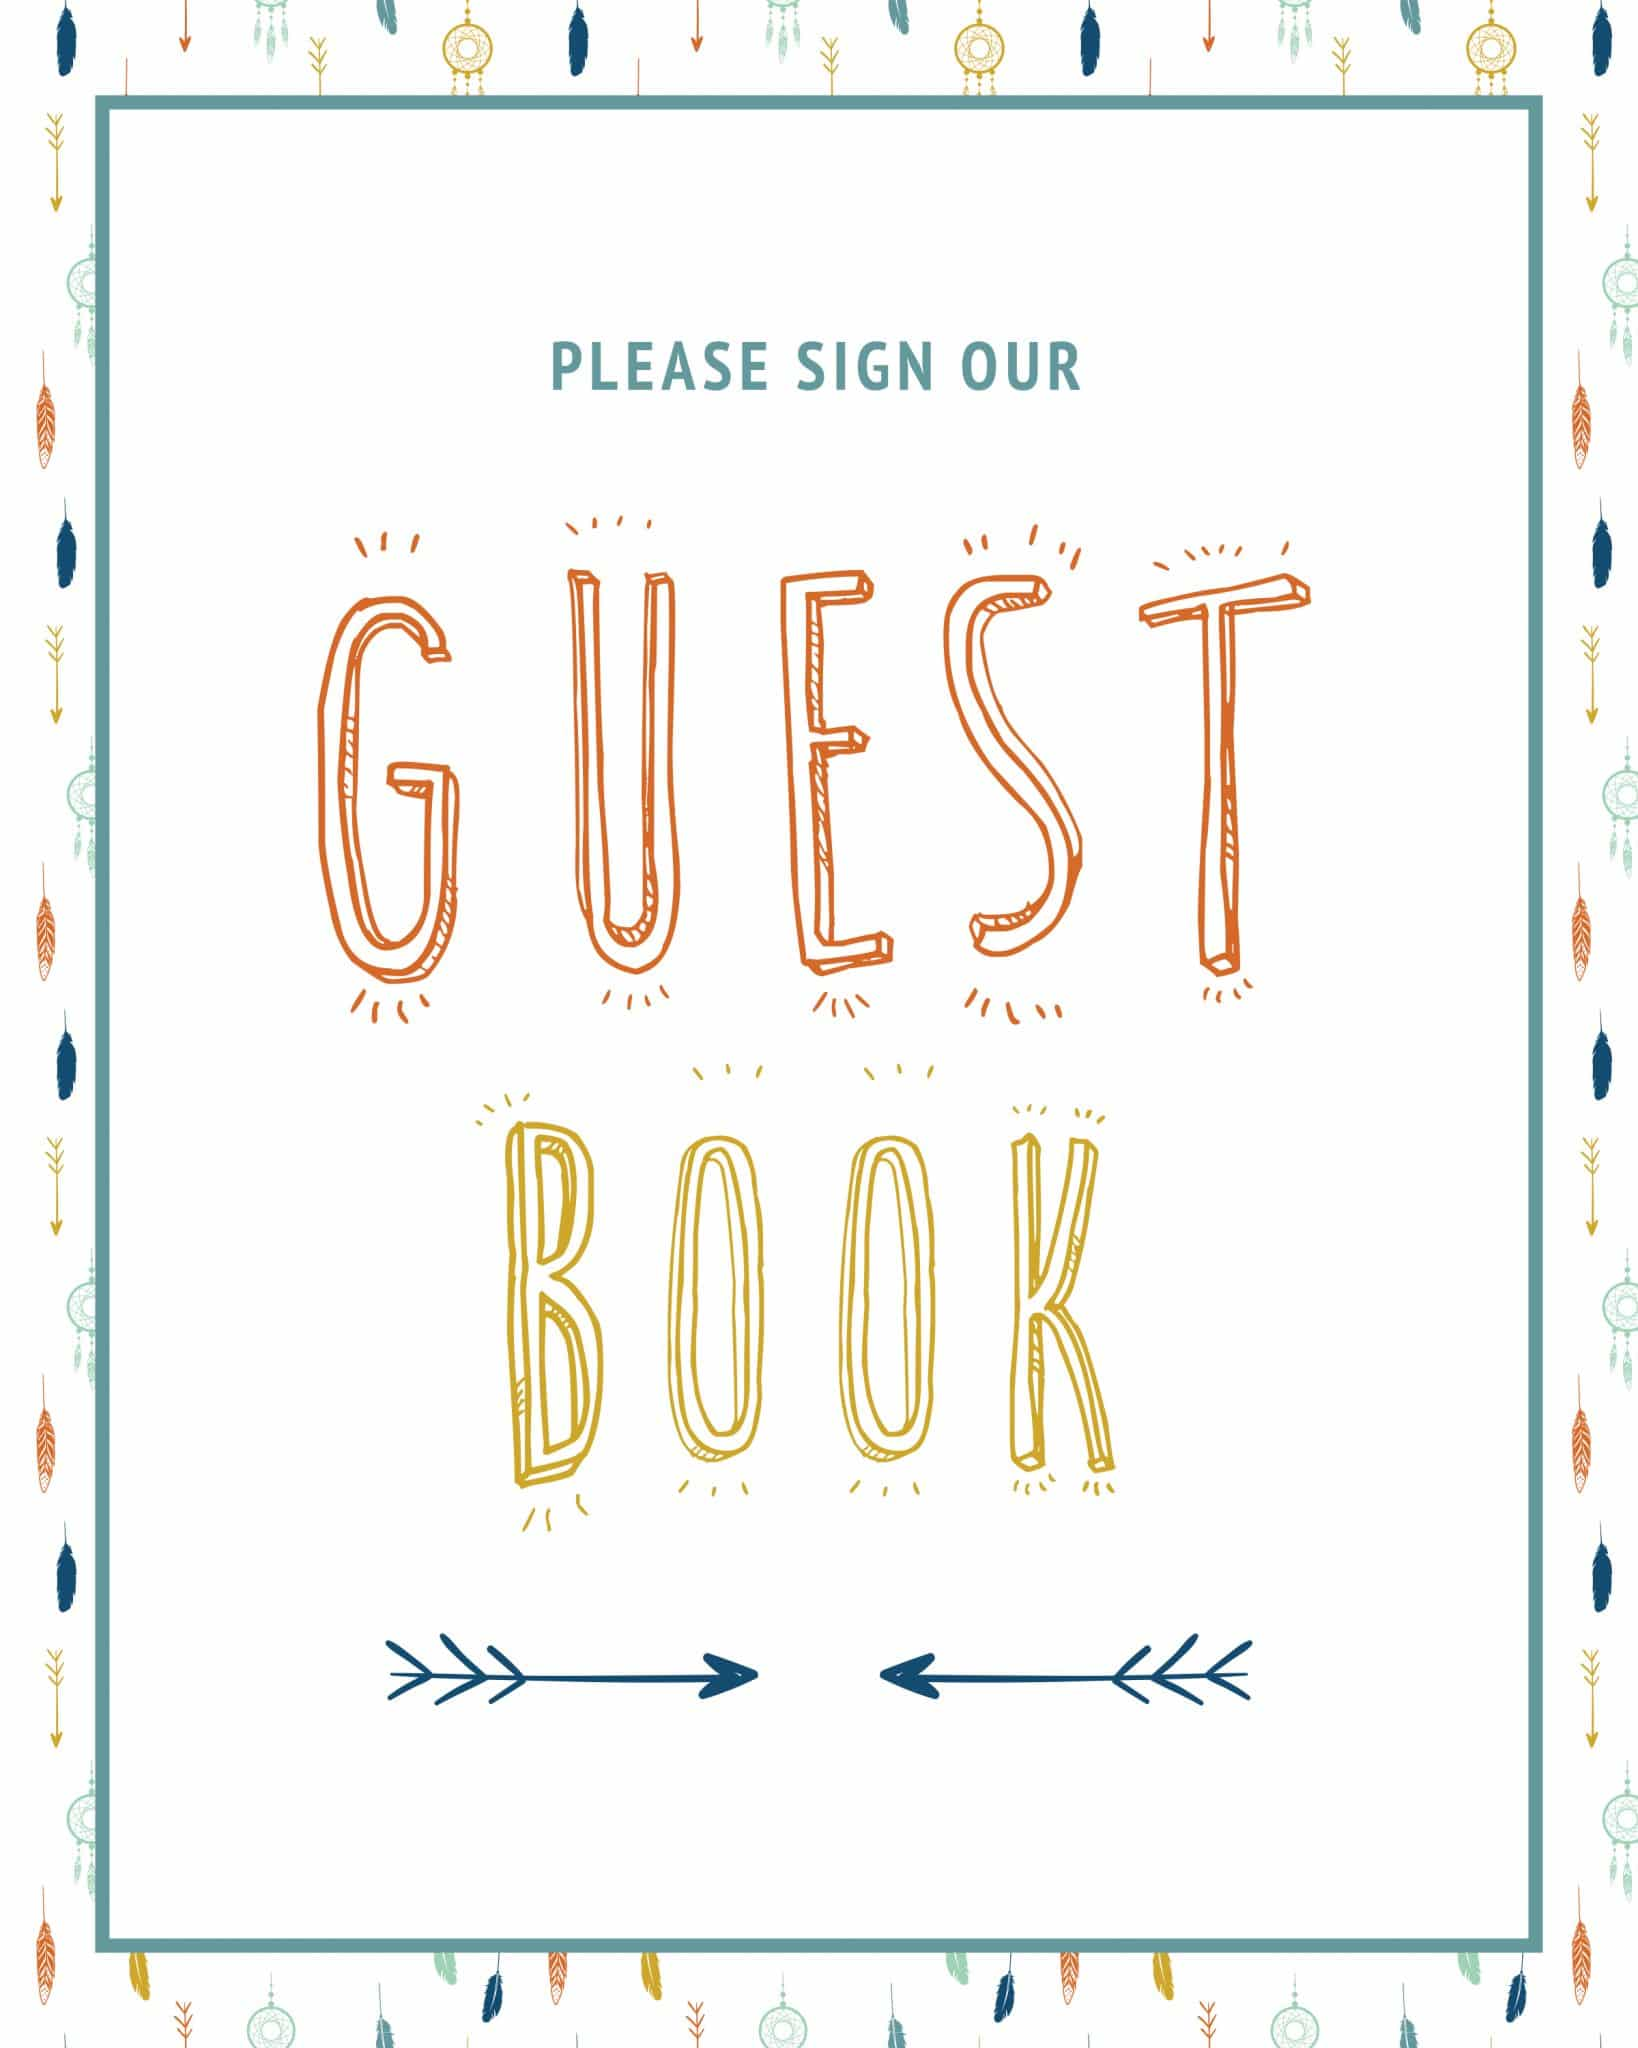 Please sign our guestbook boho aztec rustic theme